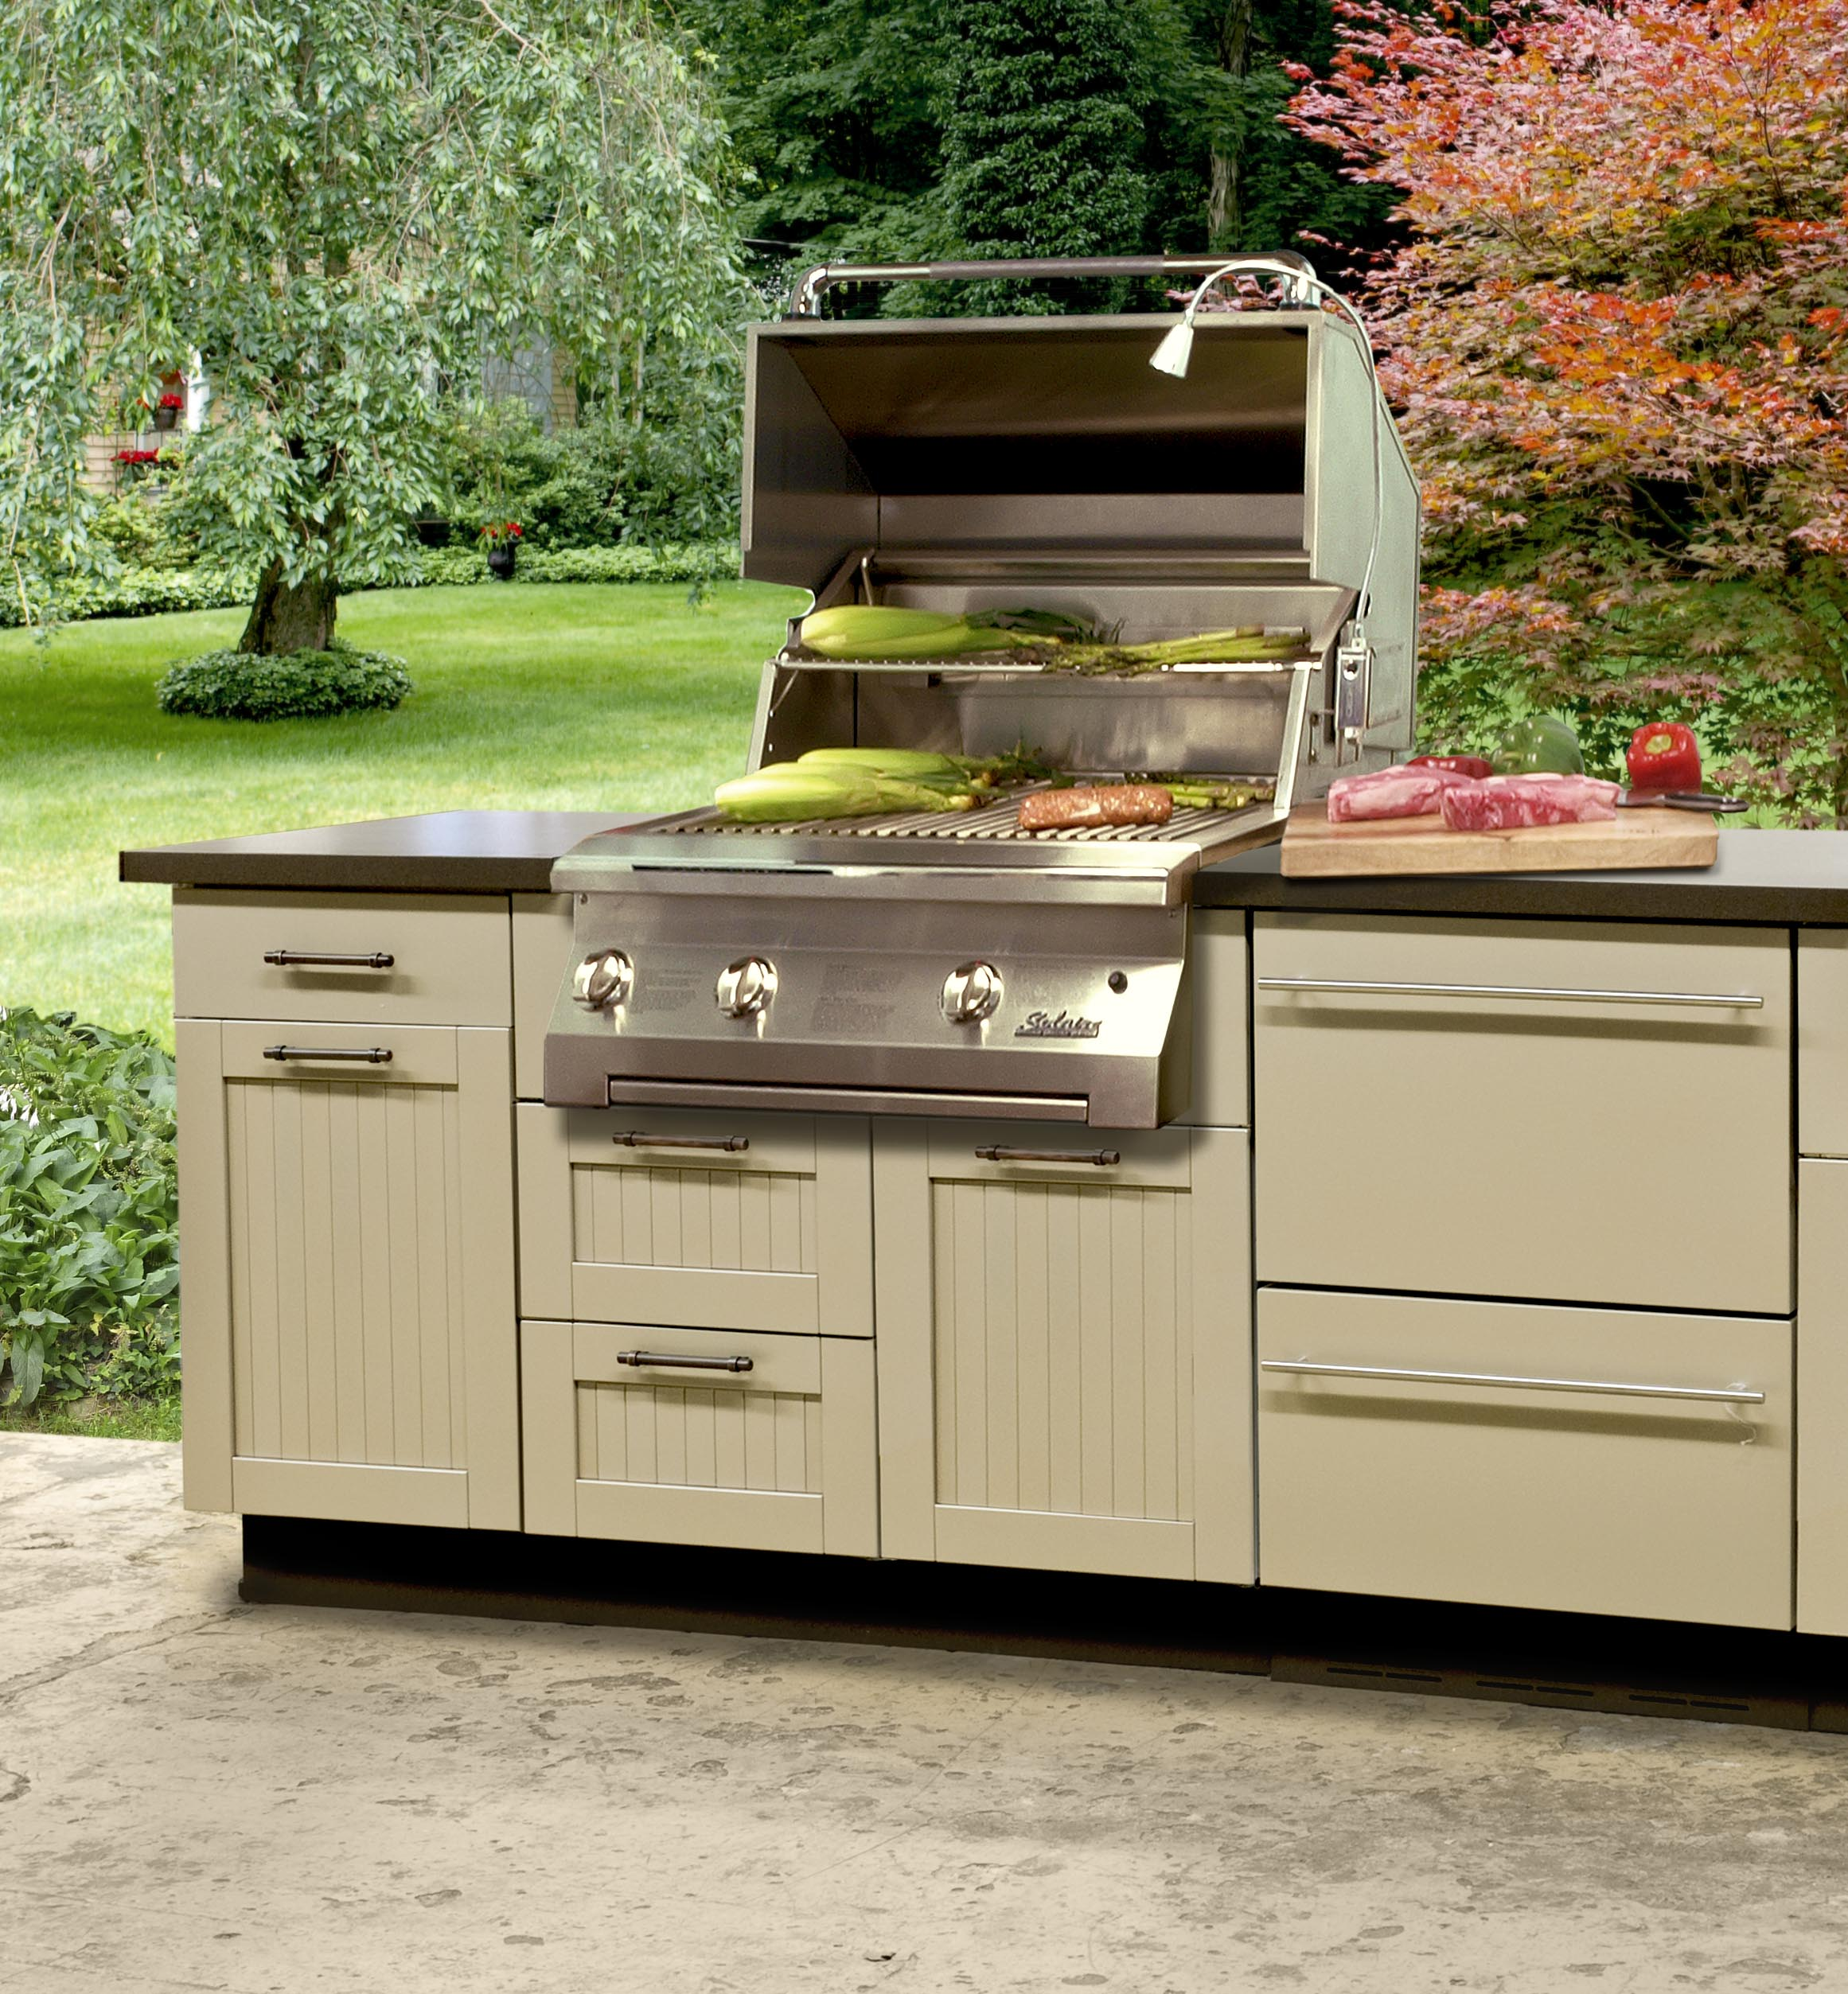 Outdoor Kitchen Cupboards: Best Suited To Offer You Top Notch